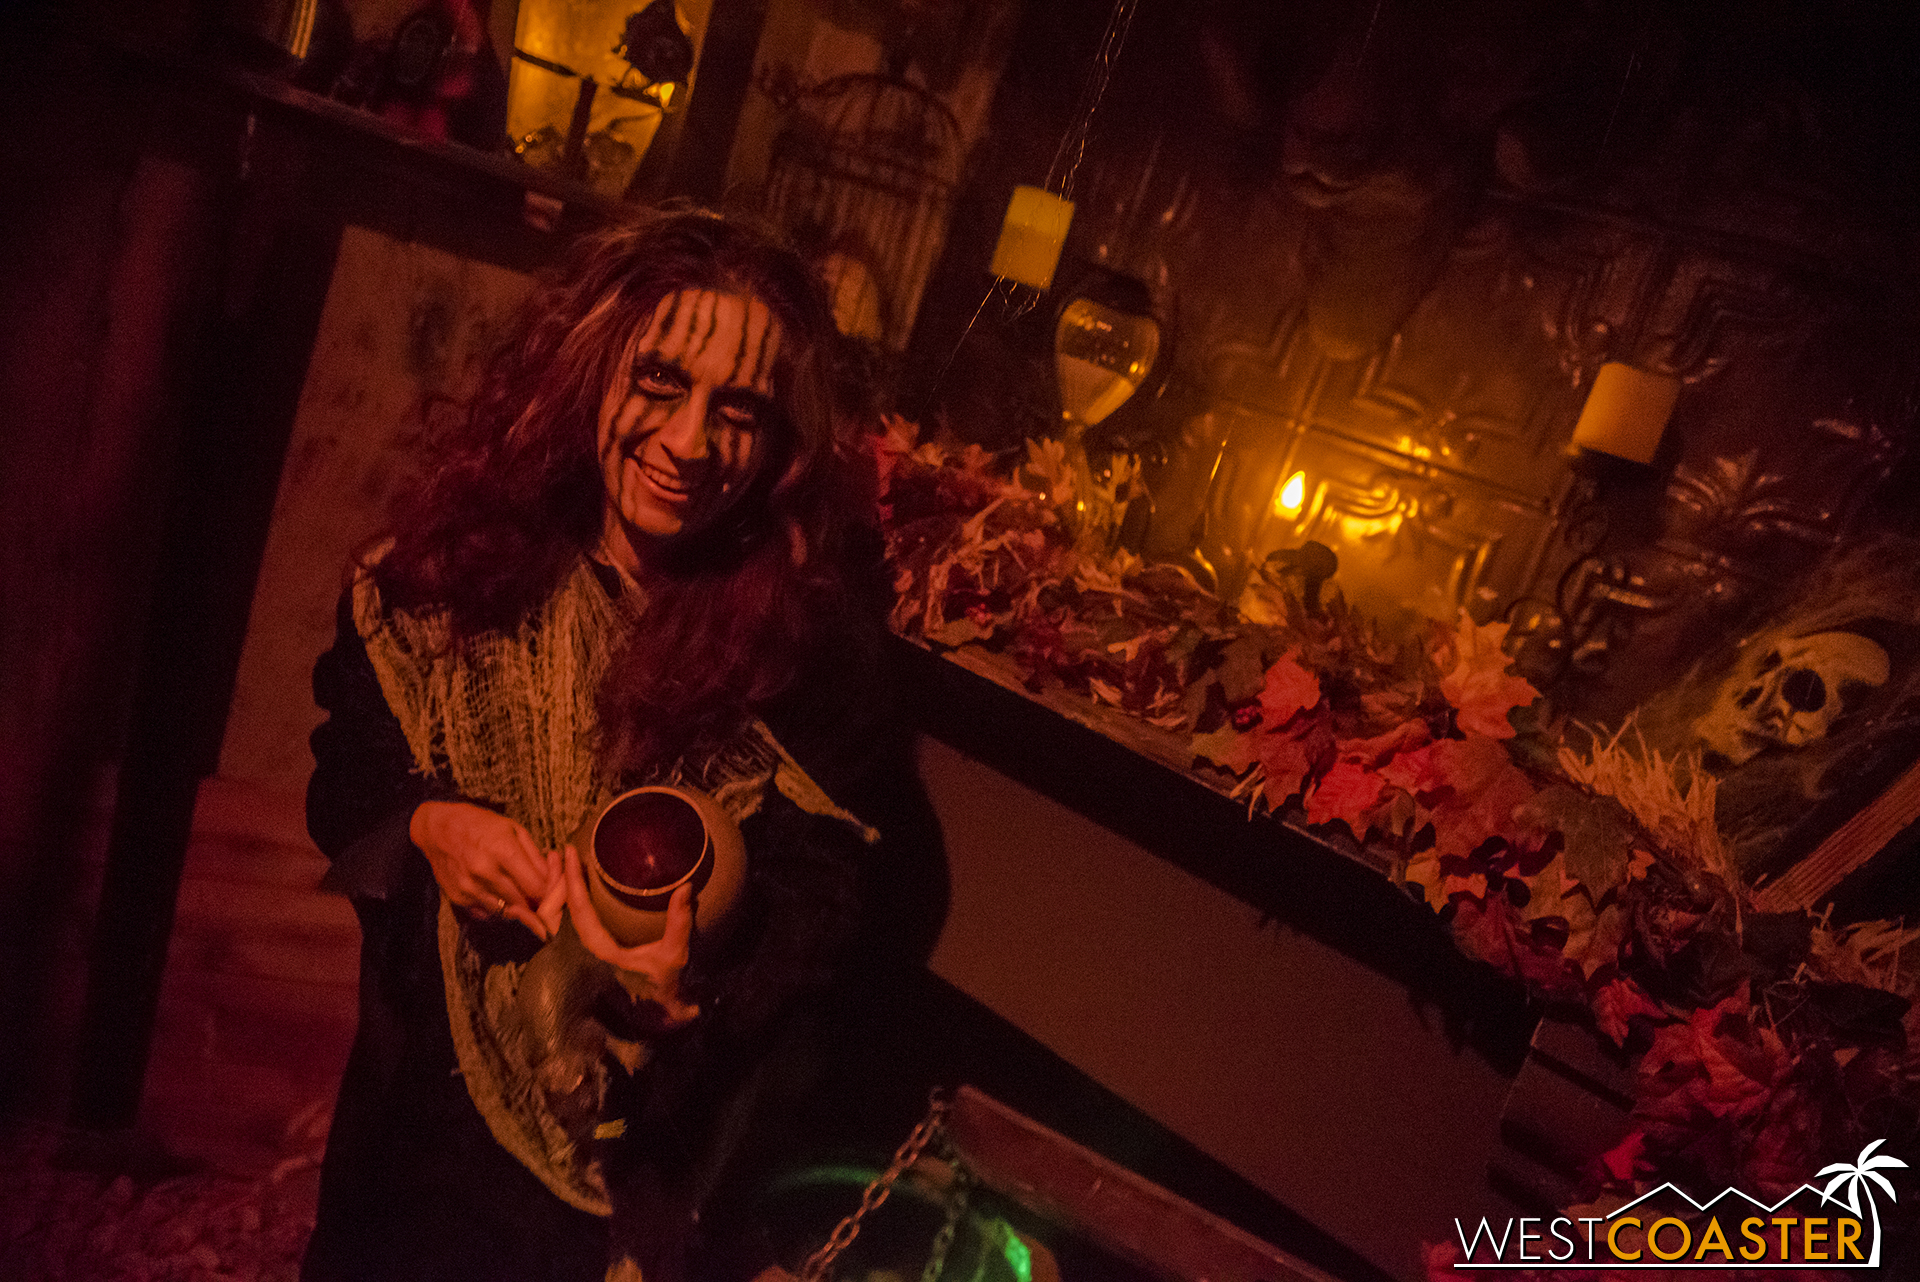 This classic home haunt is back for another year, bringing guests into its torturous medieval scene!